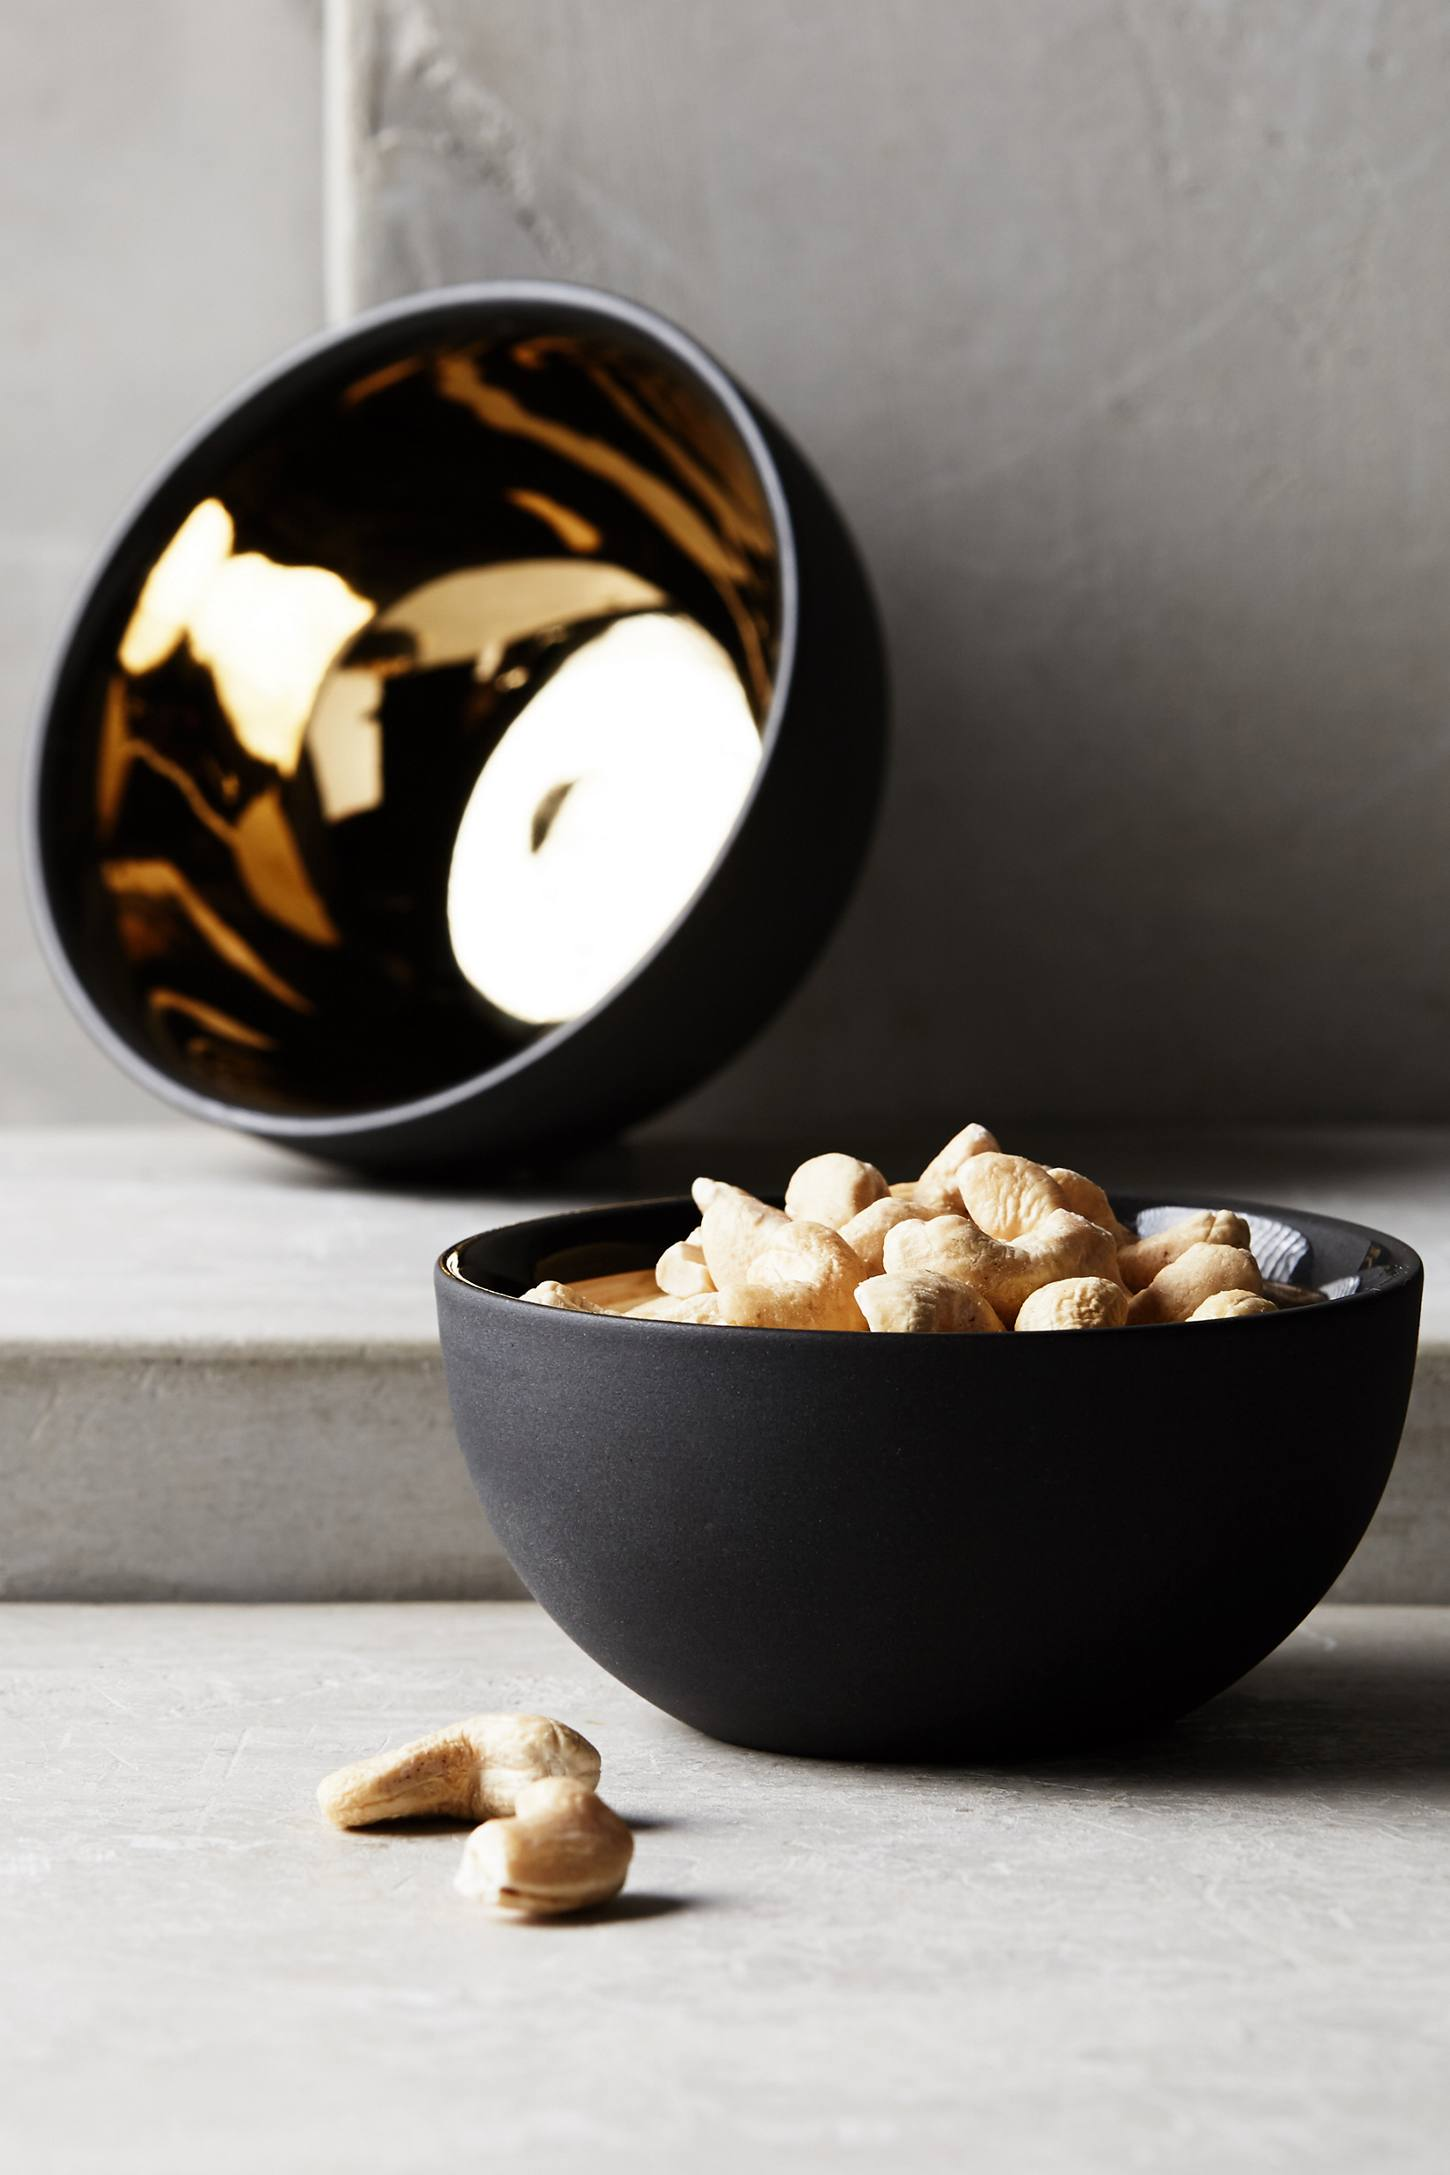 Stylish nut bowl from Anthropologie